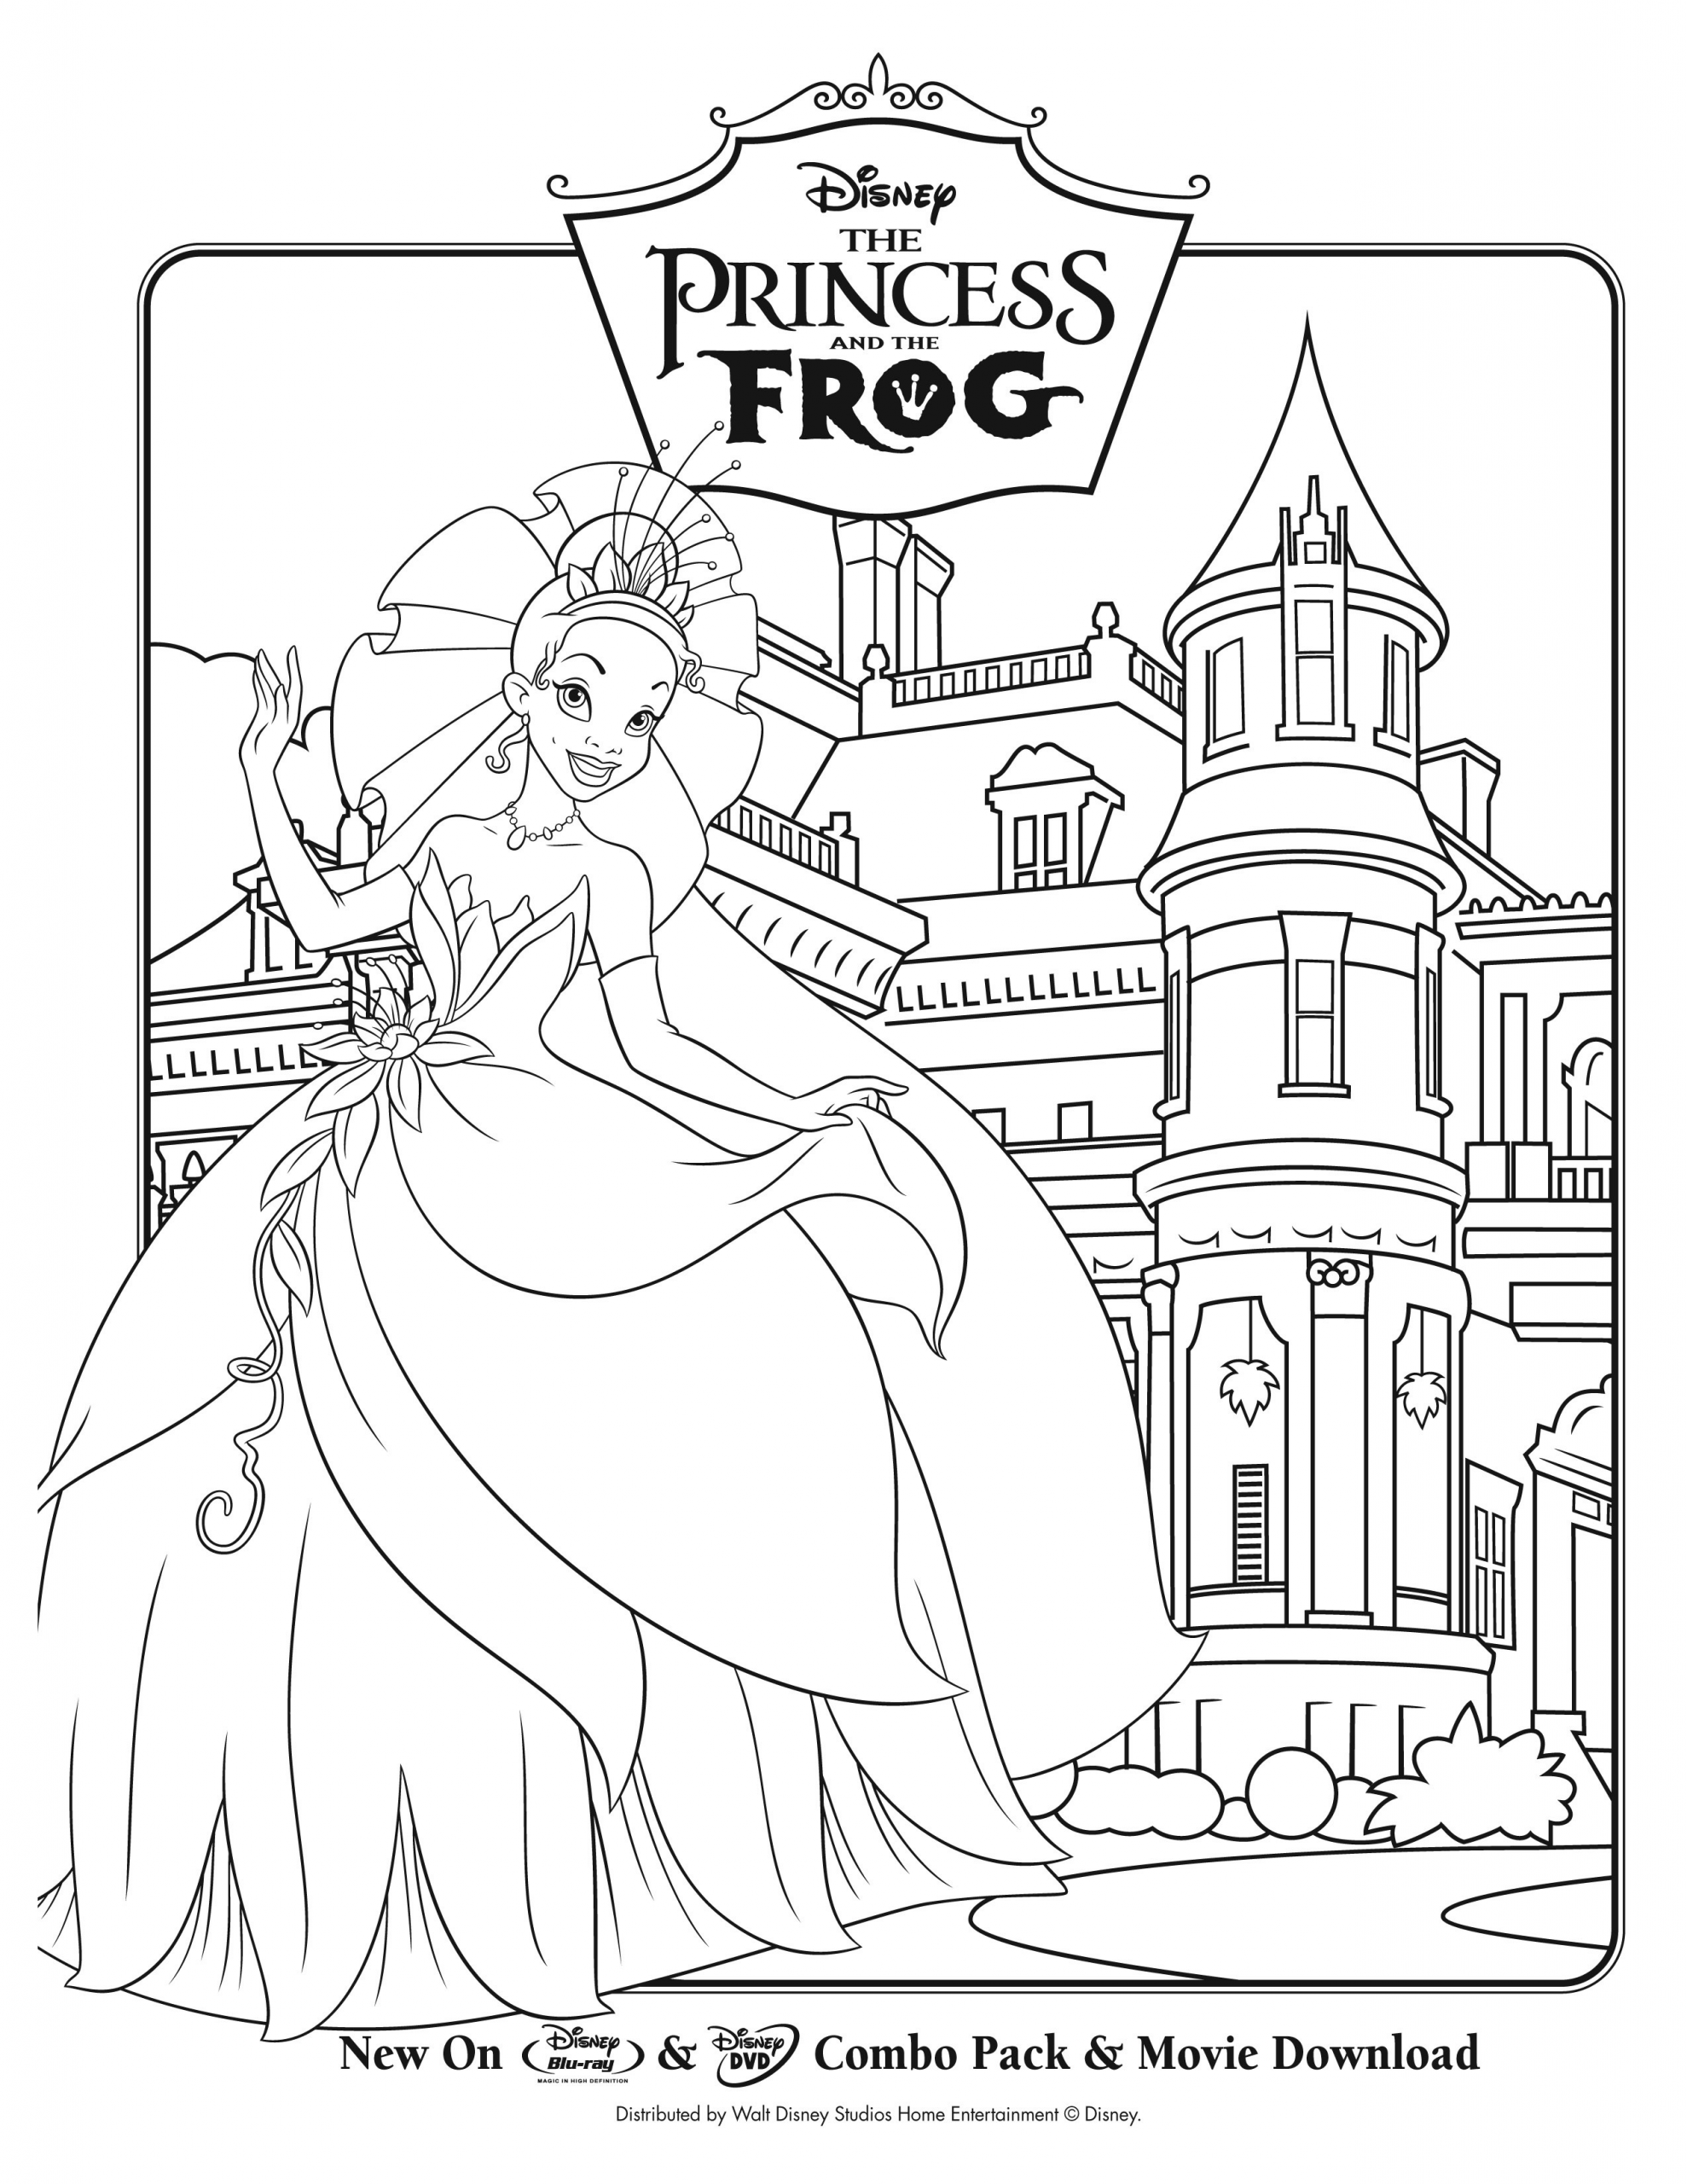 Princess And The Frog Coloring Page Youngandtae Com In 2020 Disney Princess Coloring Pages Disney Princess Colors Frog Coloring Pages